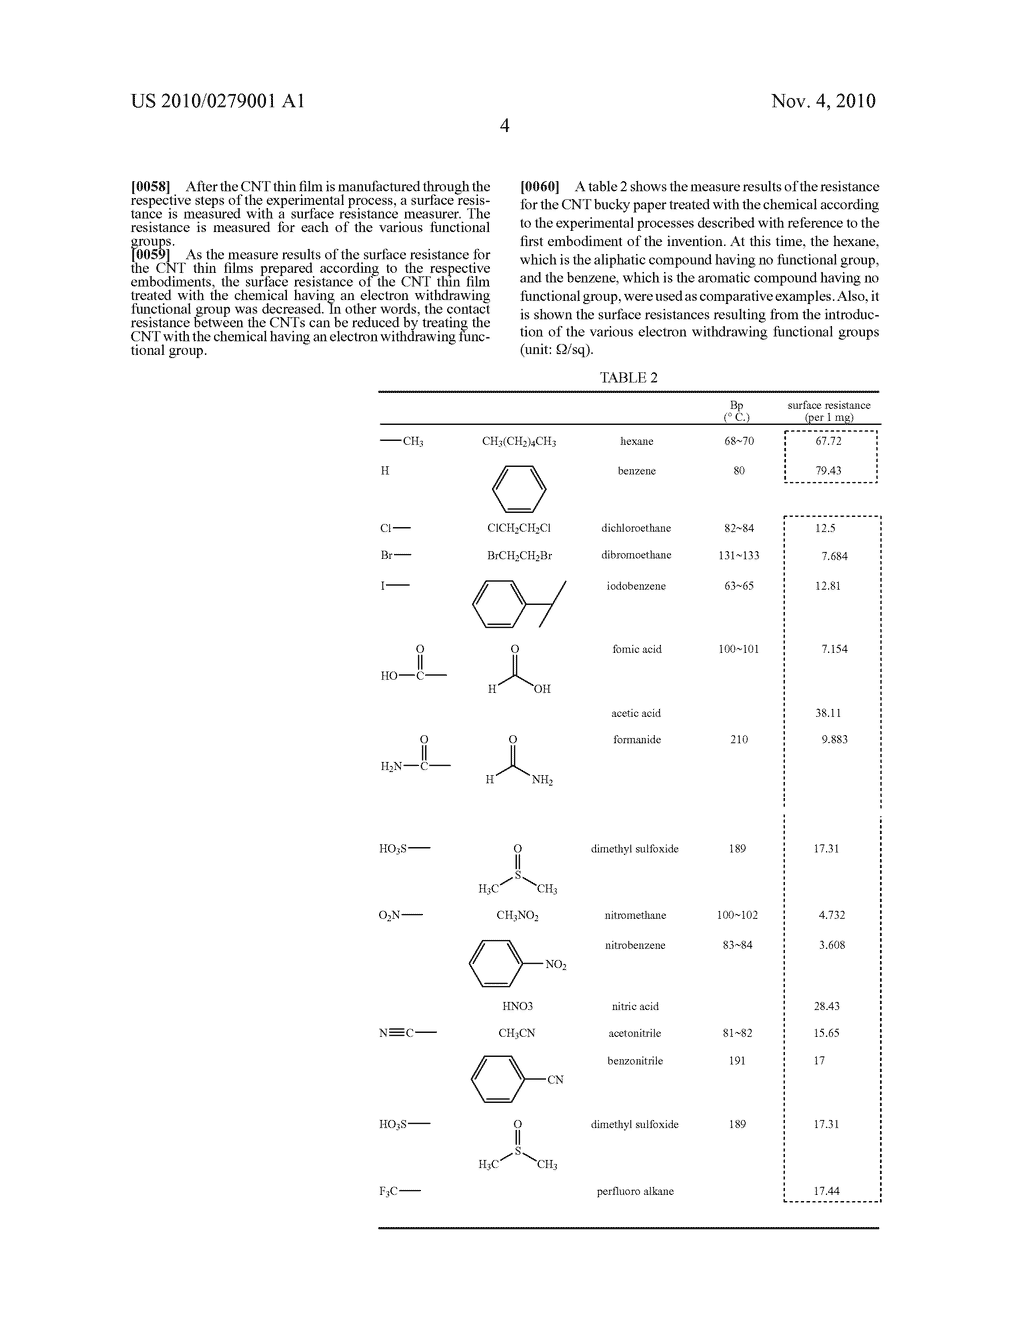 CARBON NANO-TUBE (CNT) THIN FILM TREATED WITH CHEMICAL HAVING ELECTRON WITHDRAWING FUNCTIONAL GROUP AND MANUFACTURING METHOD THEREOF - diagram, schematic, and image 13